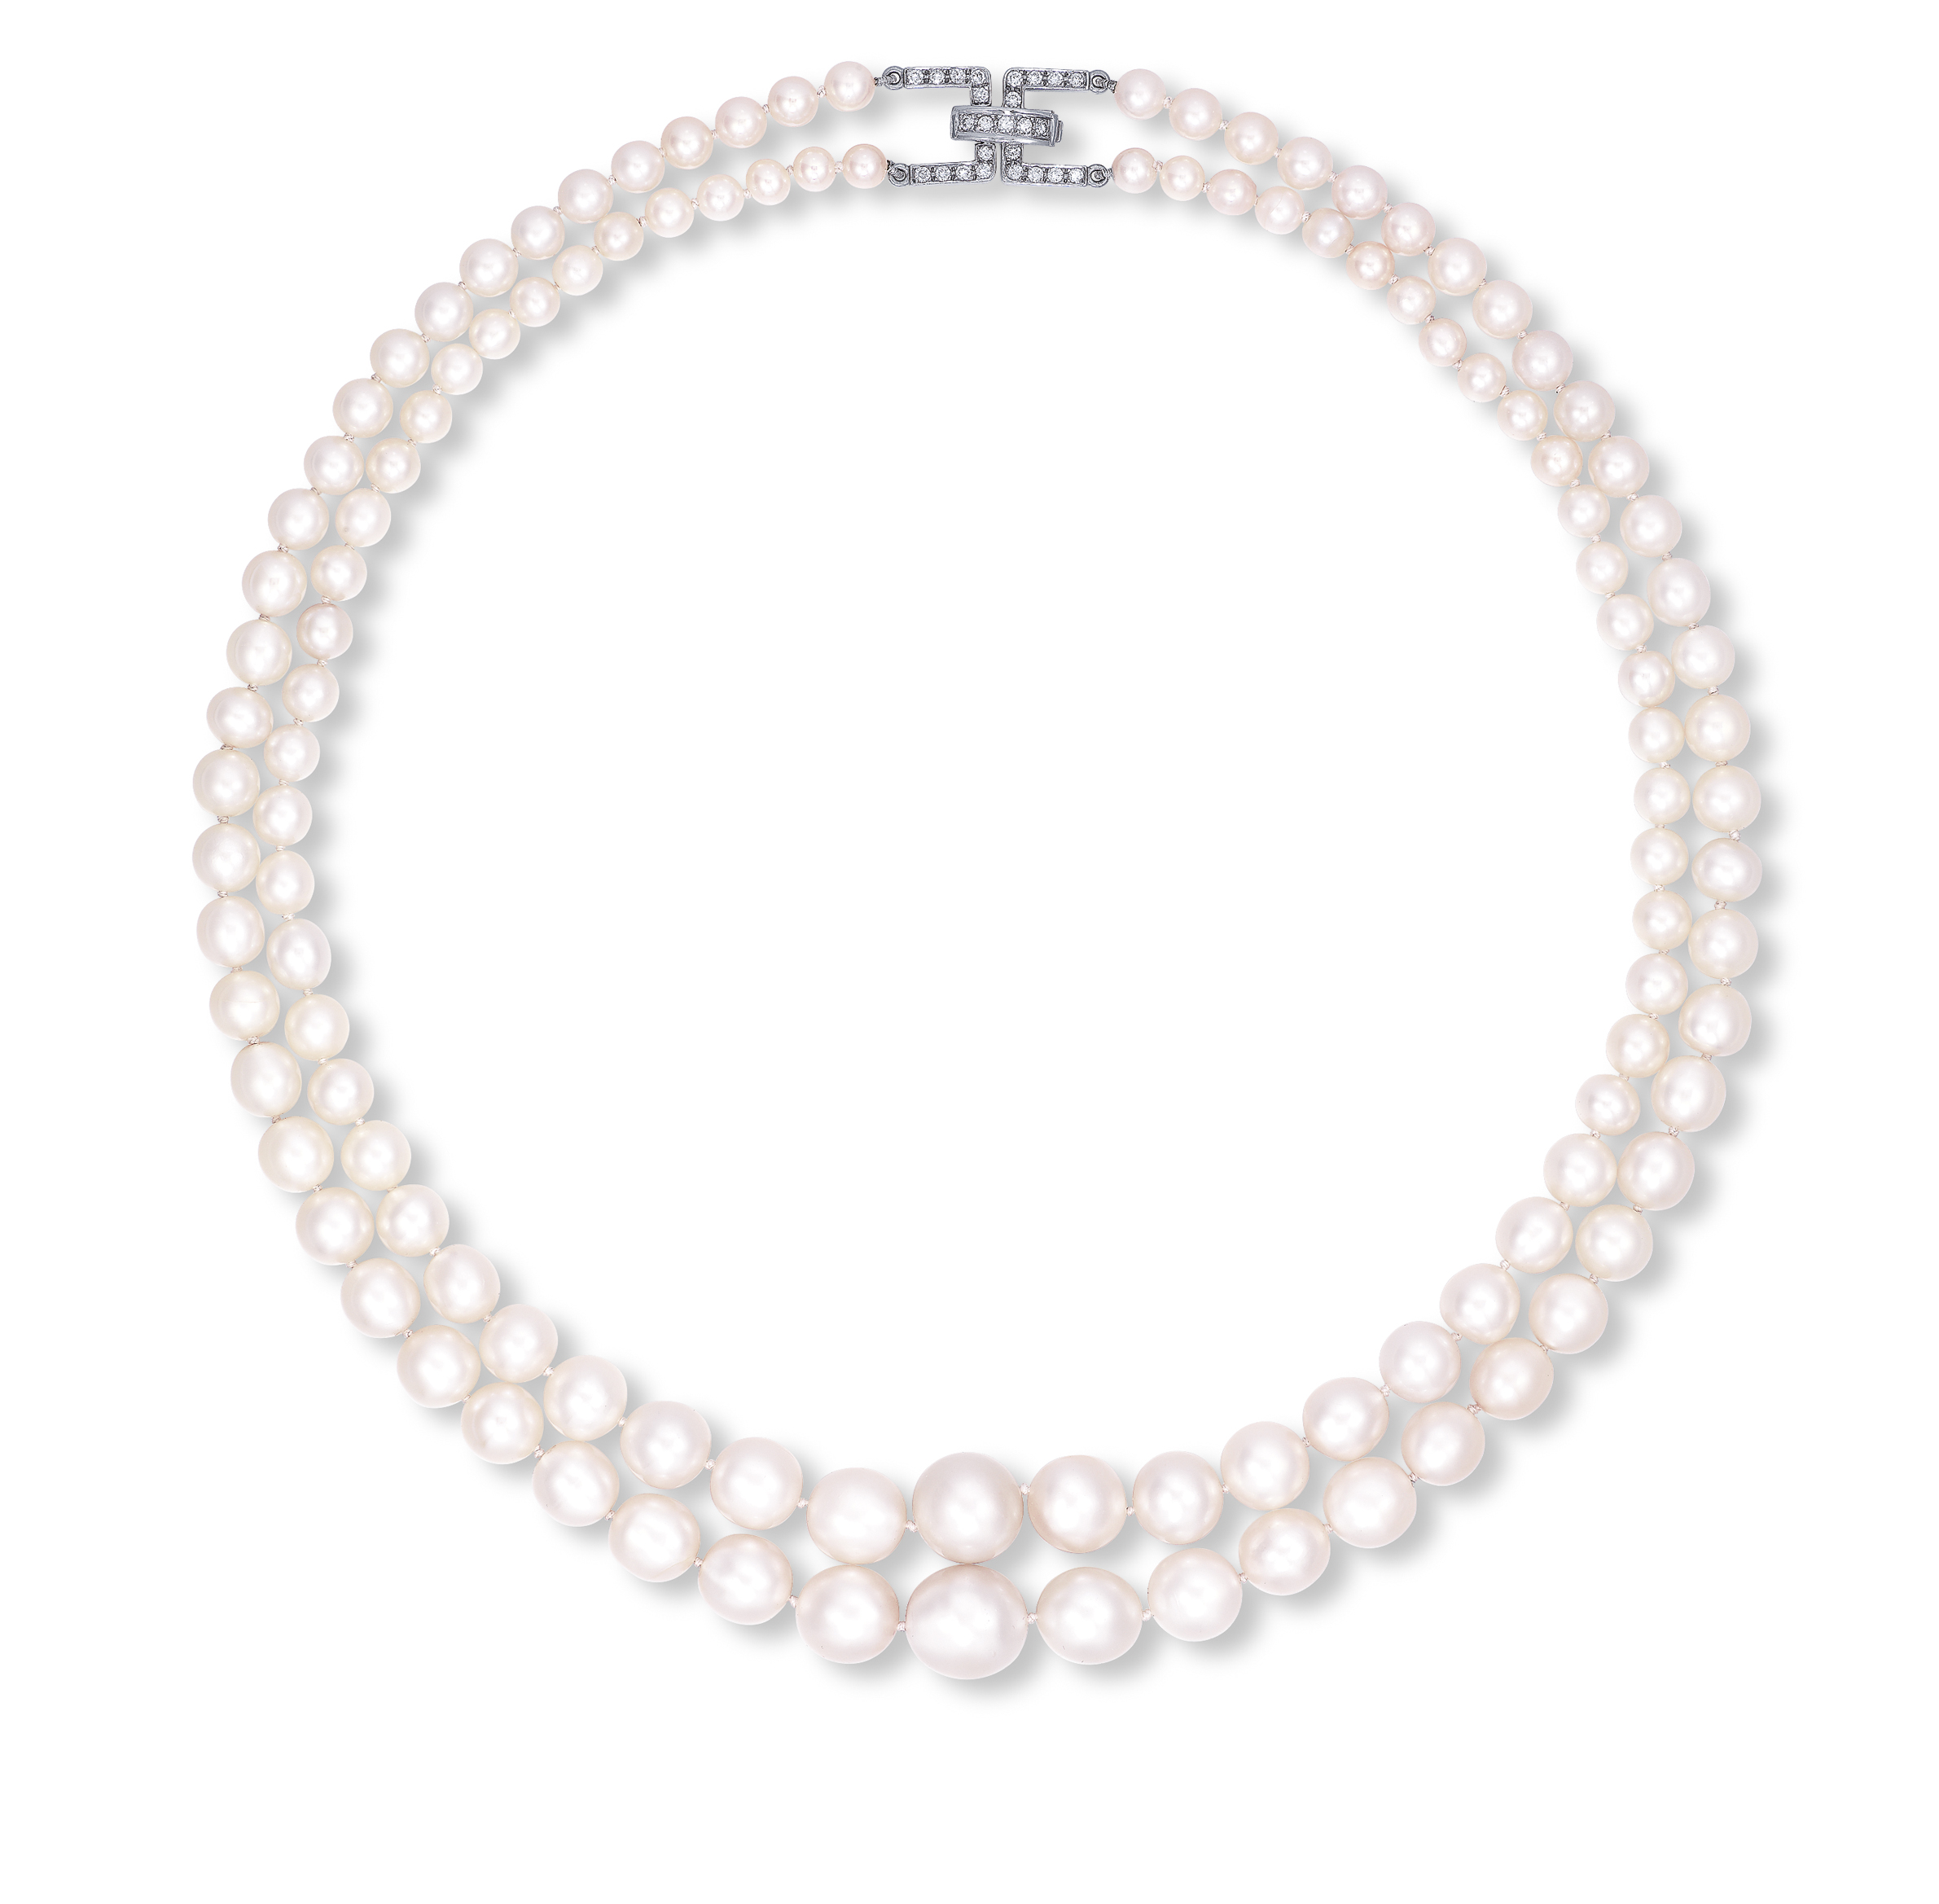 A VERY RARE TWO-STRAND NATURAL PEARL AND DIAMOND NECKLACE